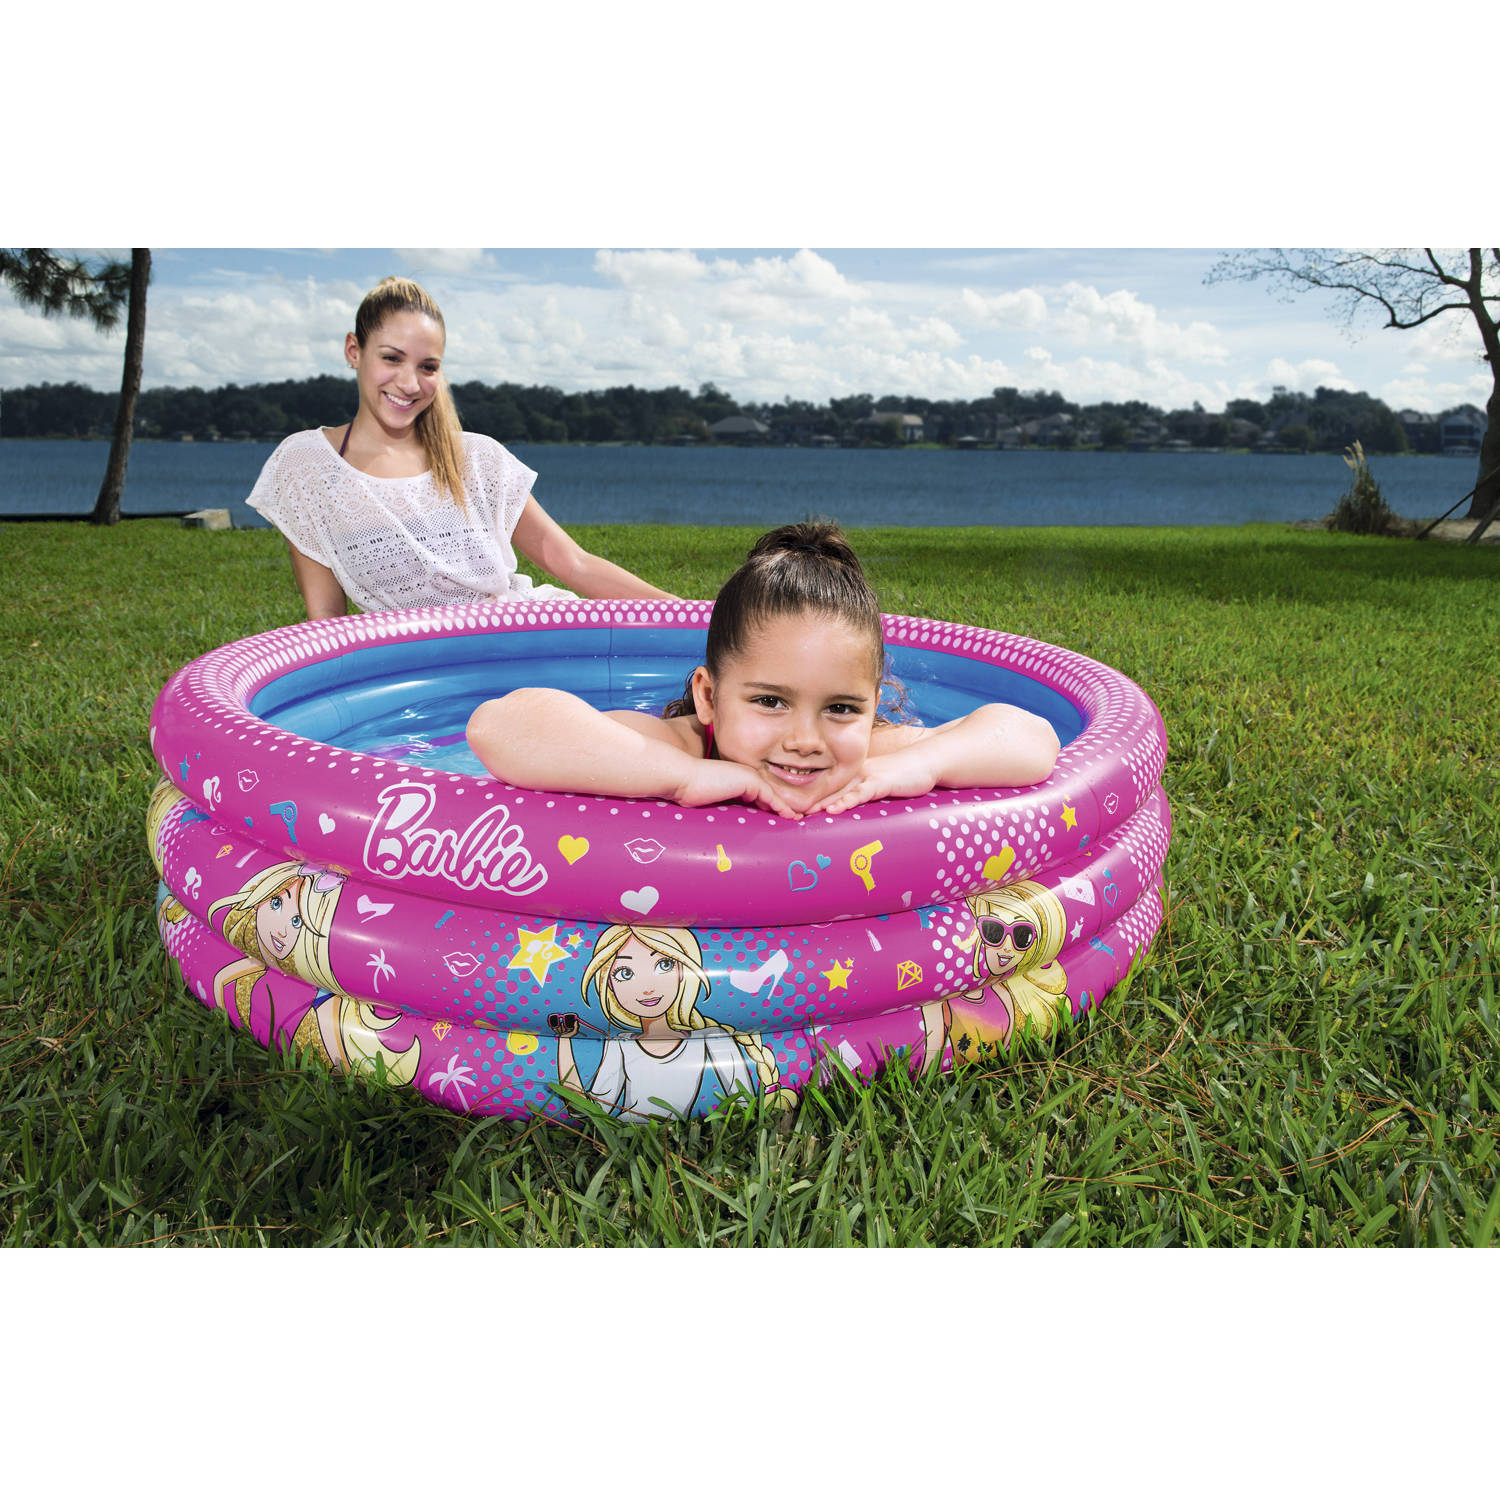 Barbie 3-Ring Inflatable Play Pool